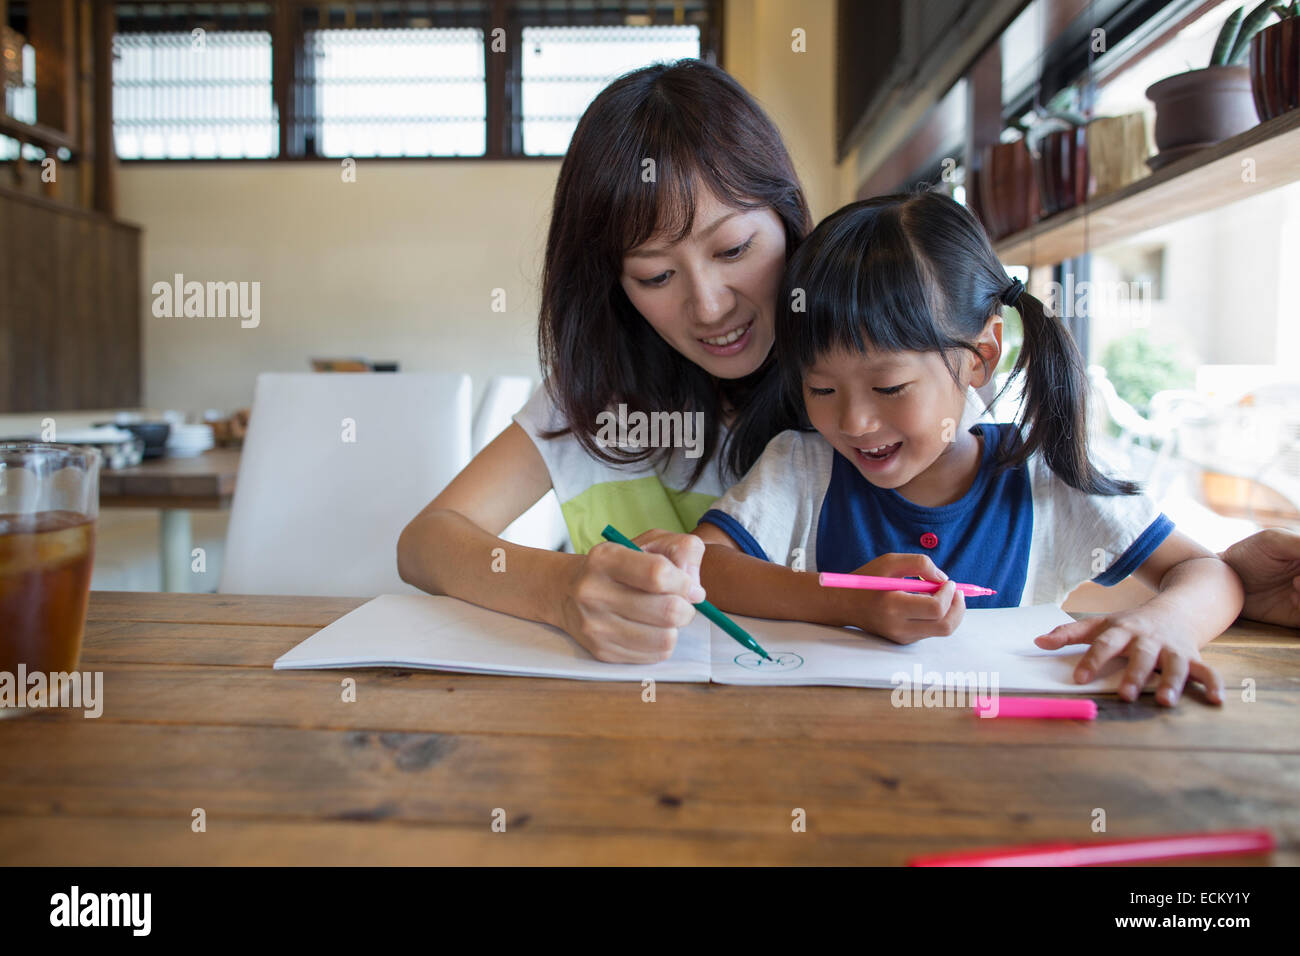 Mother and daughter sitting at a table, drawing with felt tip pens, smiling. - Stock Image